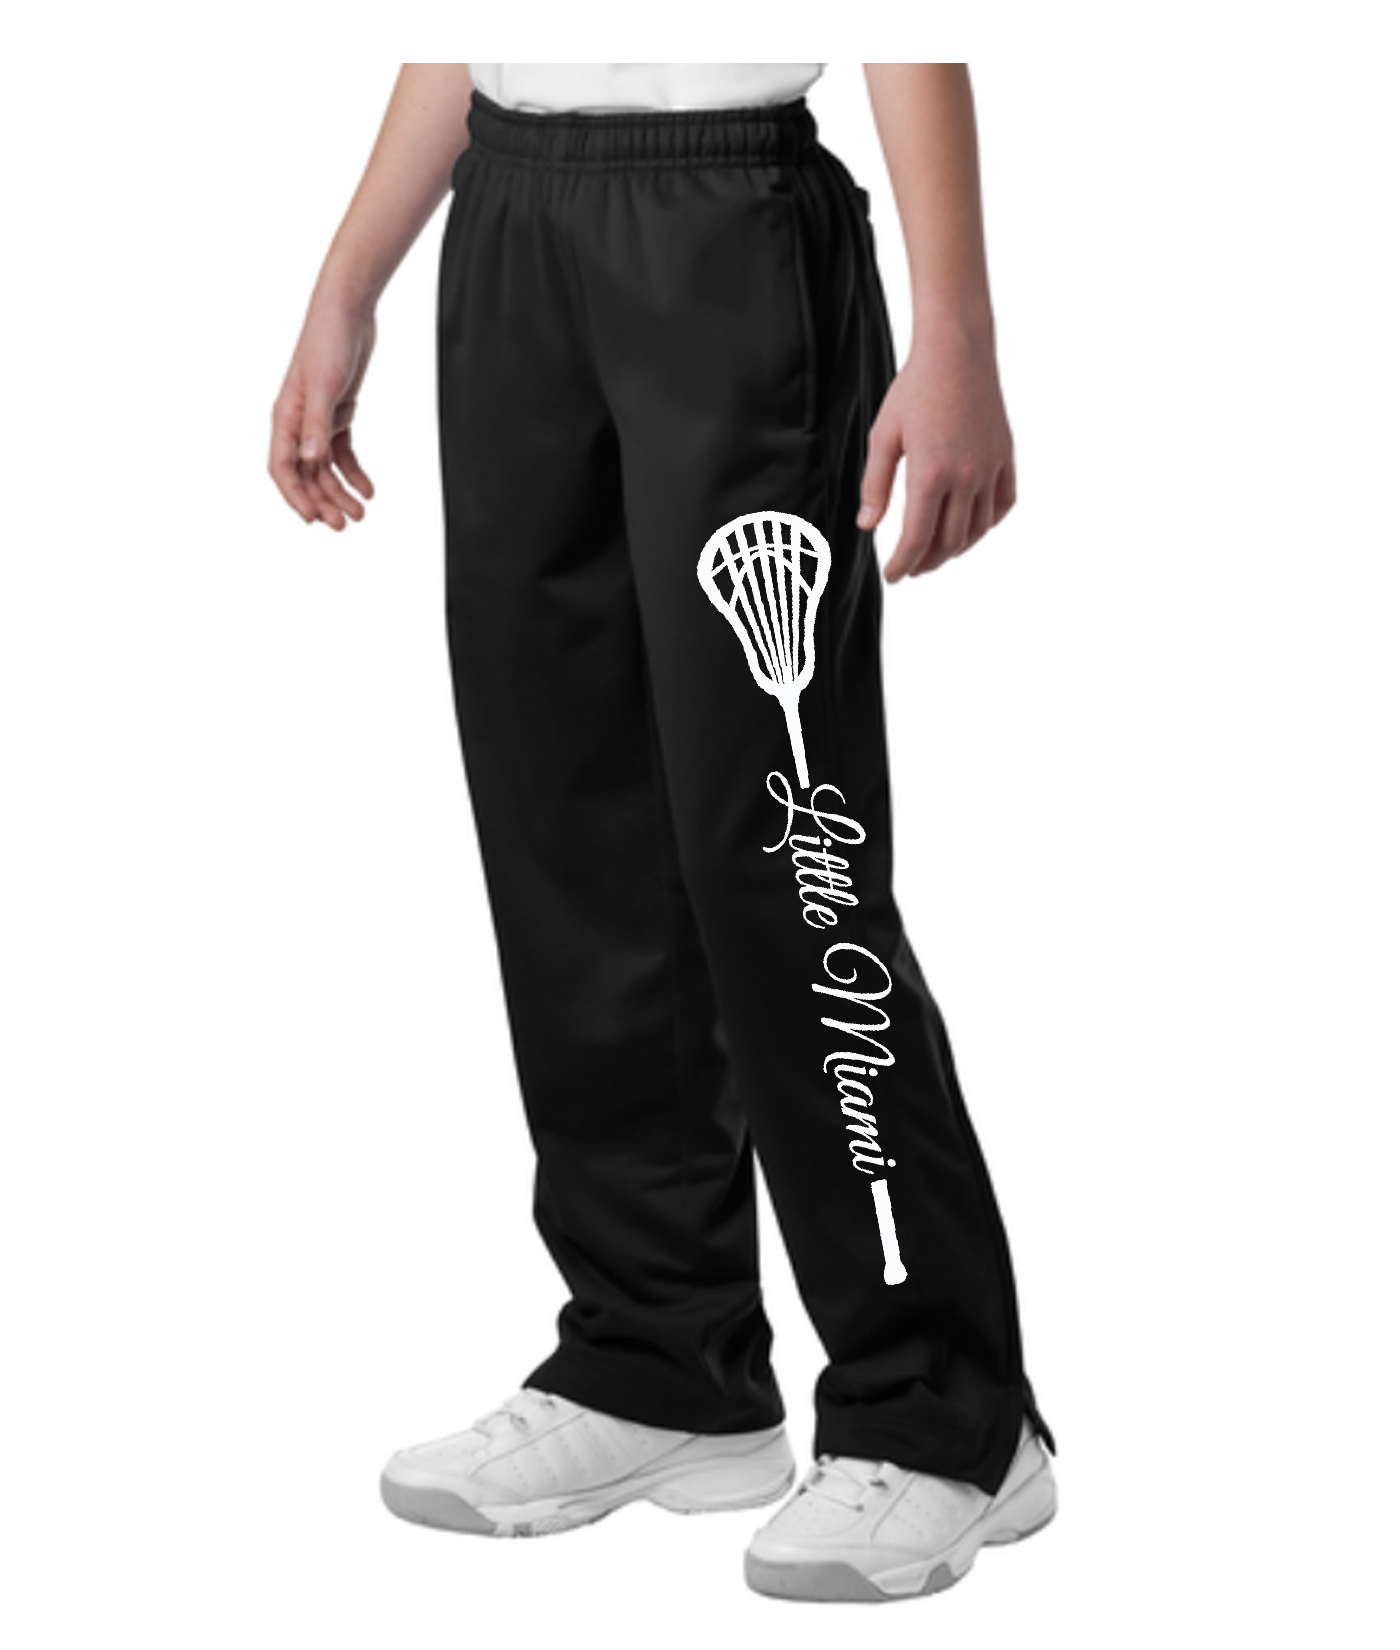 LM PST91_YPST91 Pants with Large LAX Stick